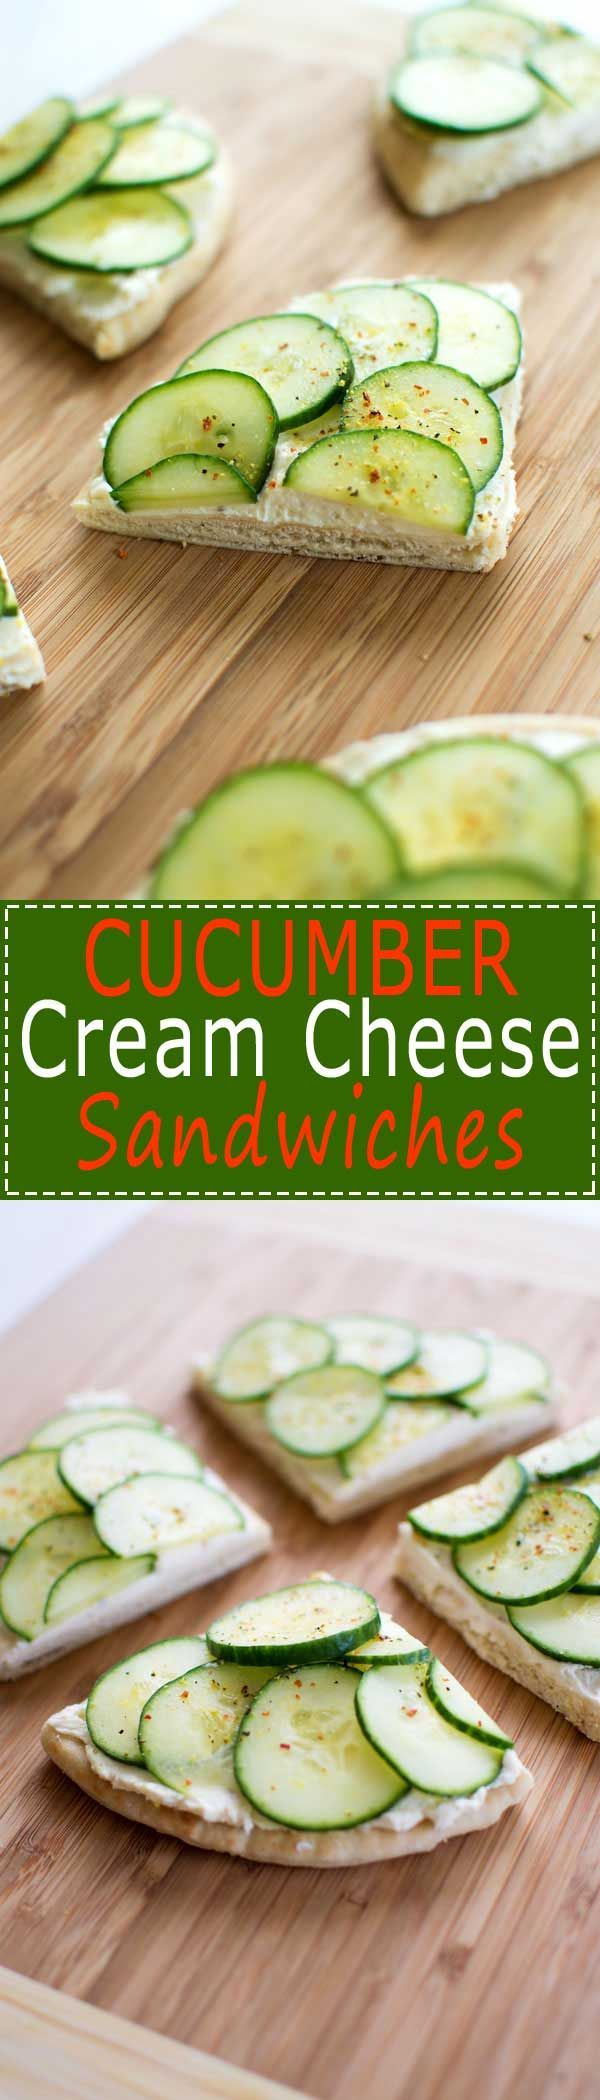 Cucumber Cream Cheese Sandwiches with zesty cream cheese and crisp cucumbers on…